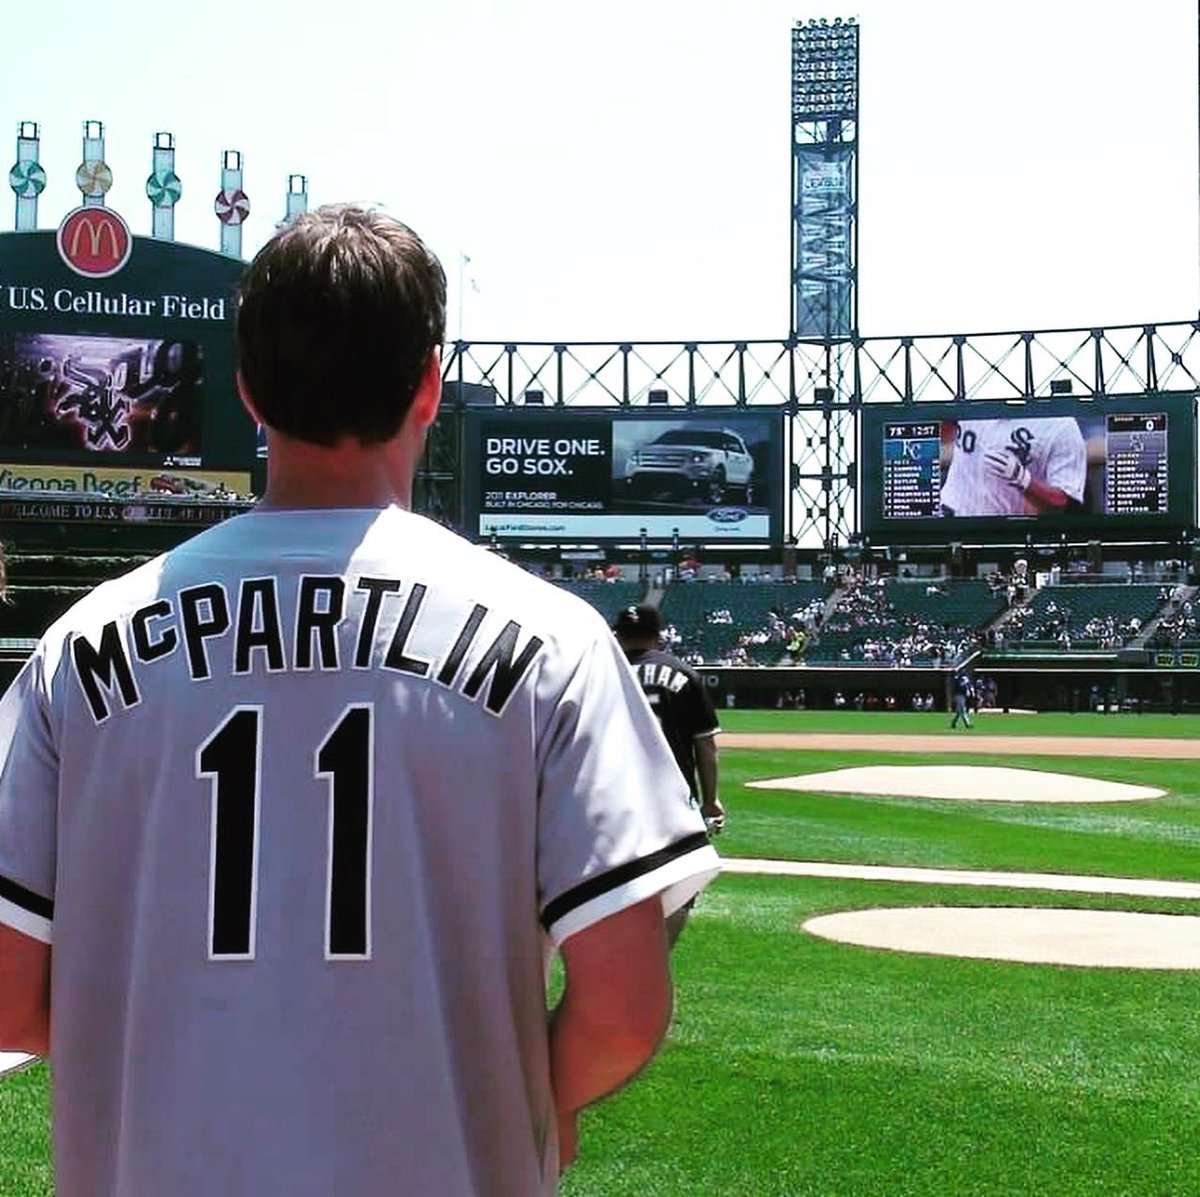 Who misses baseball??? ⚾️ 🙋🏼♂️ Should they play without fans? #tbt 🙏🏻 @whitesox